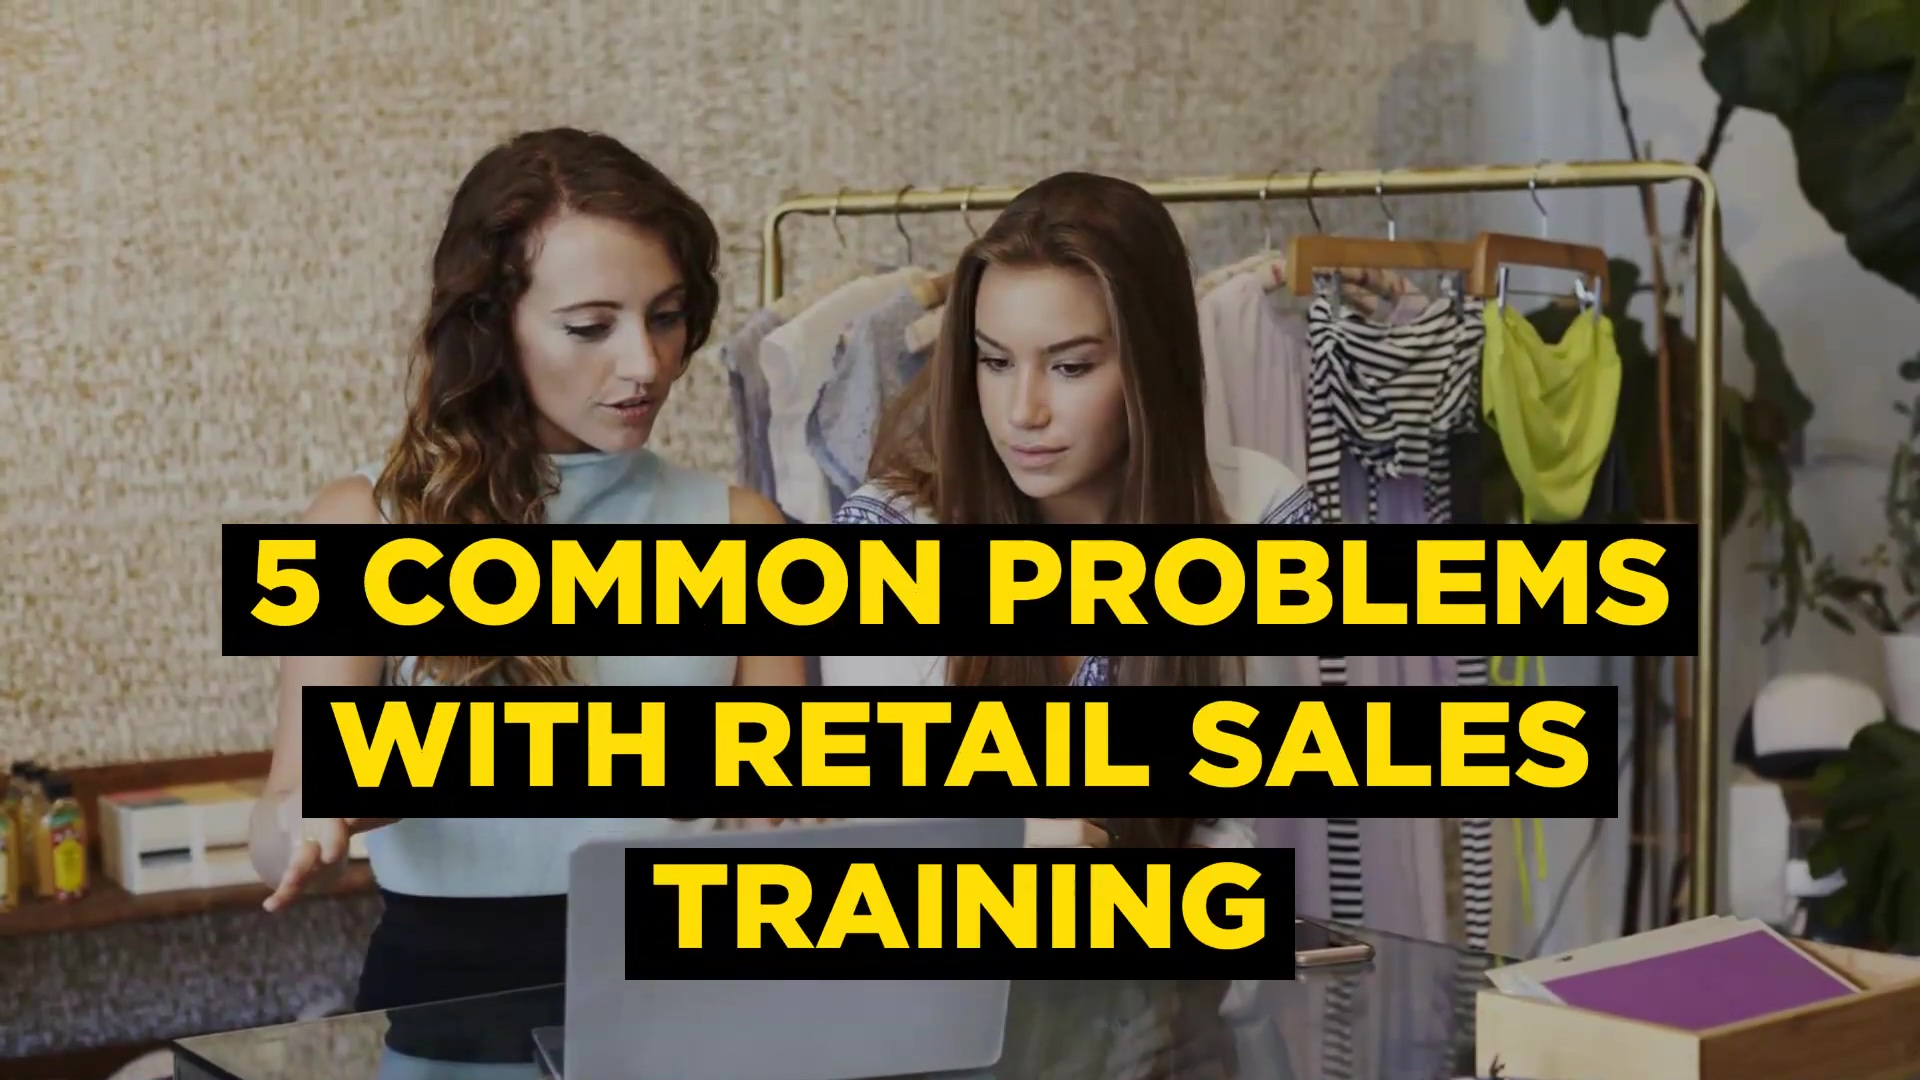 5_COMMON_PROBLEMS_WITH_RETAIL (4)